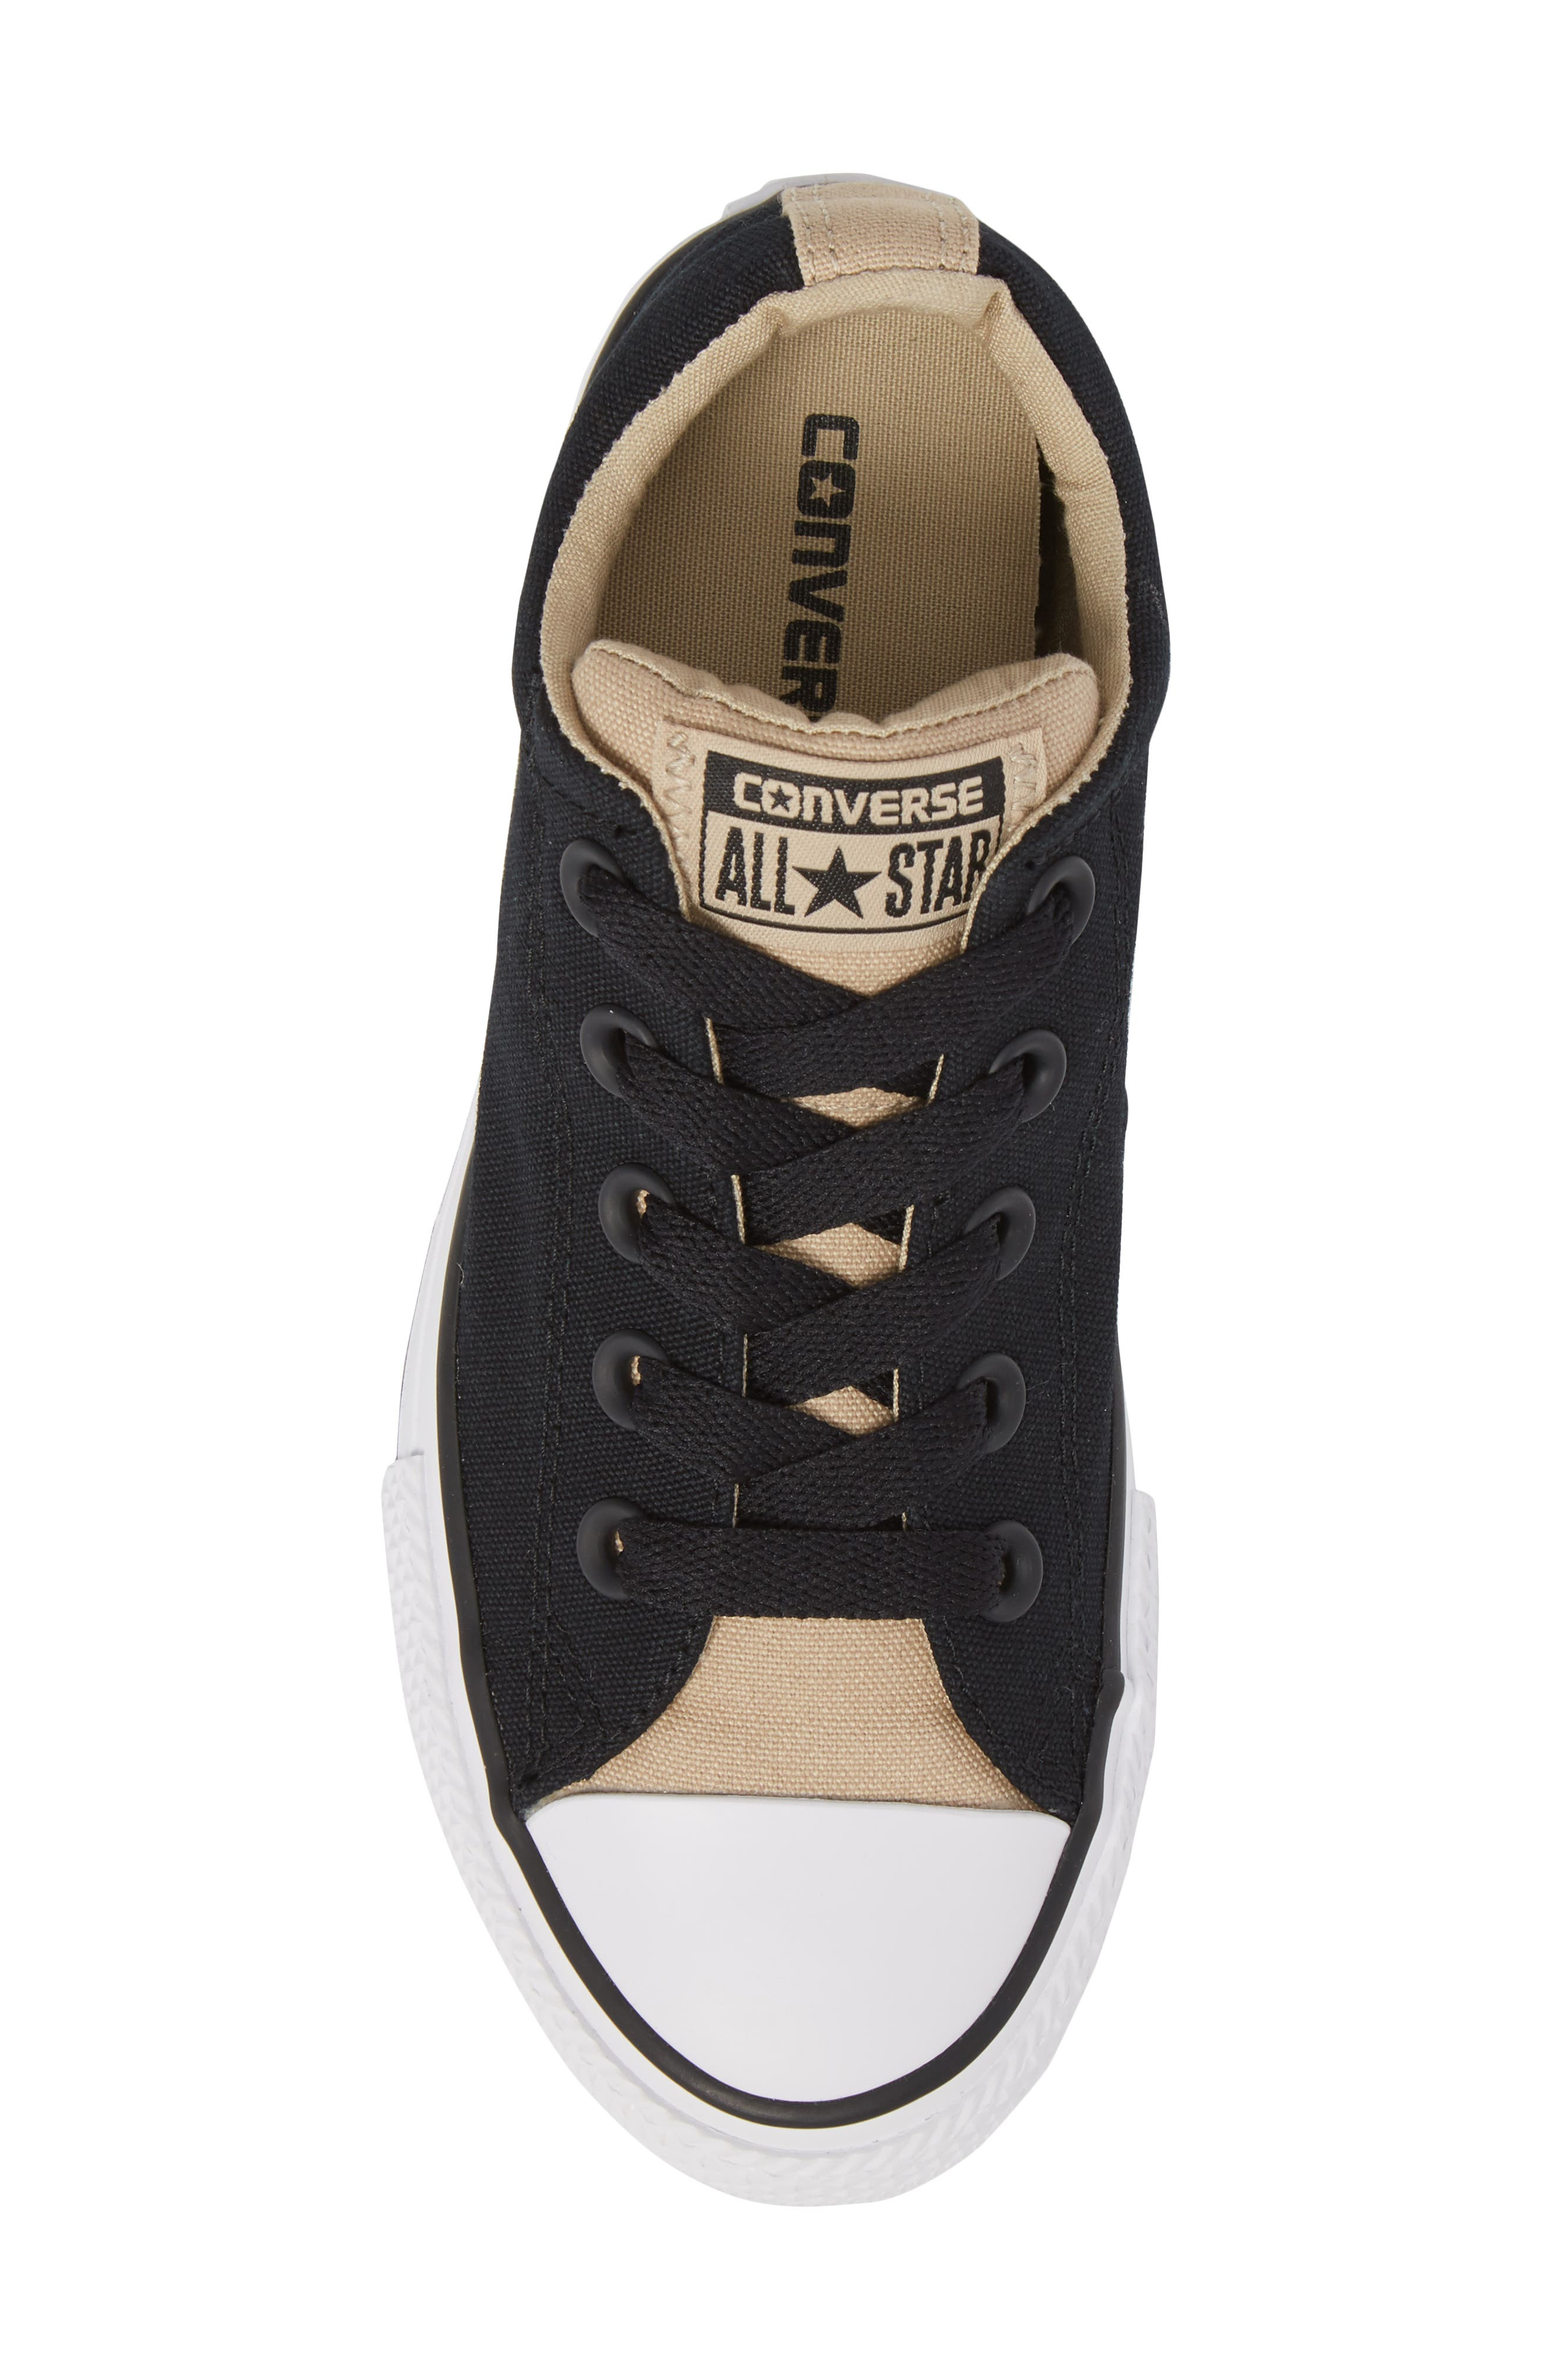 All Star<sup>®</sup> Street Slip Low Top Sneaker,                             Alternate thumbnail 5, color,                             001